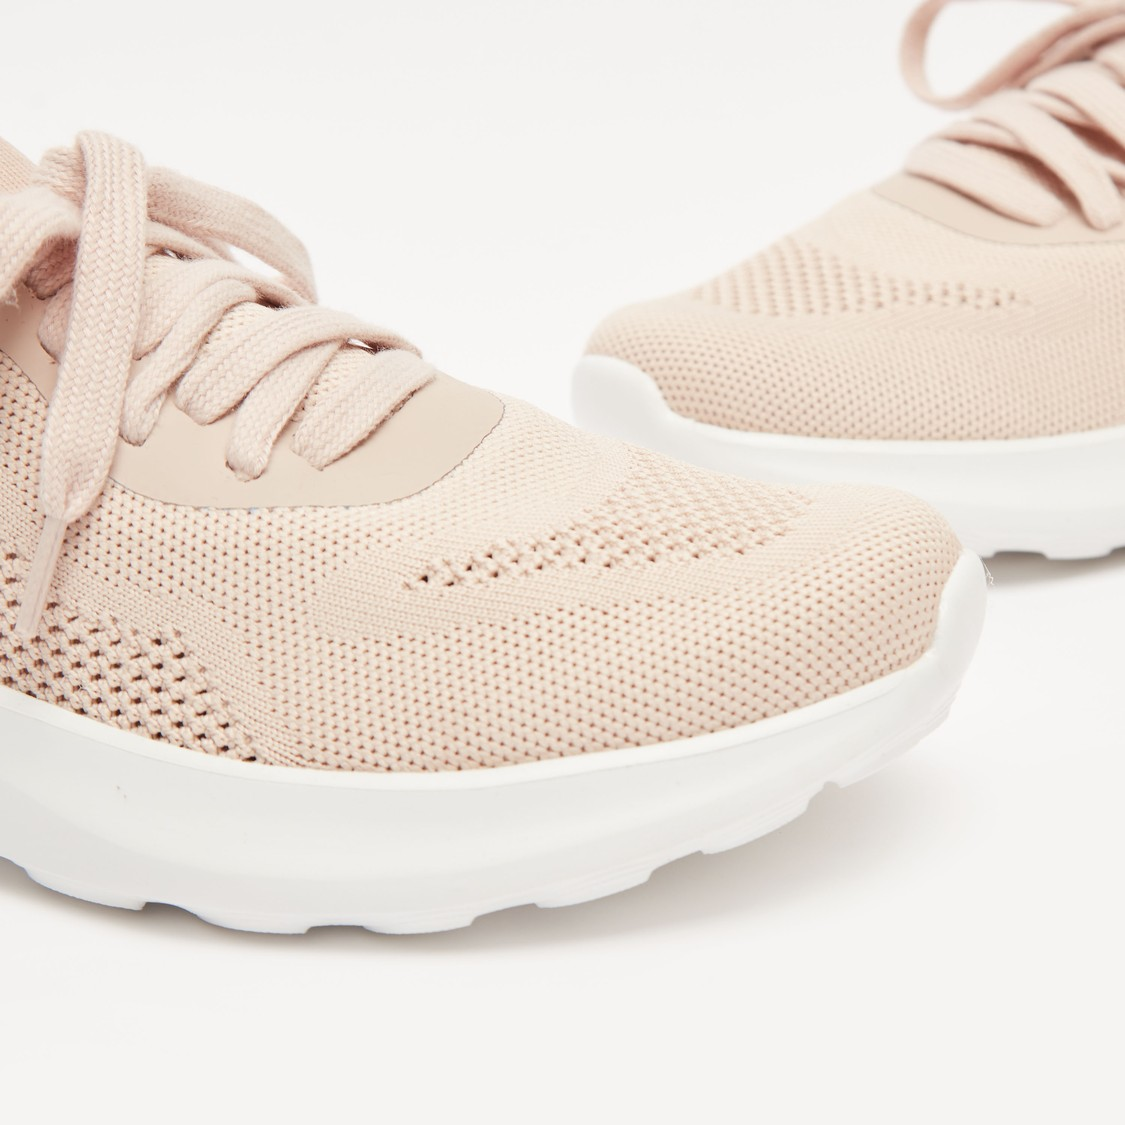 Textured Lace-Up Running Shoes with Pull Tab